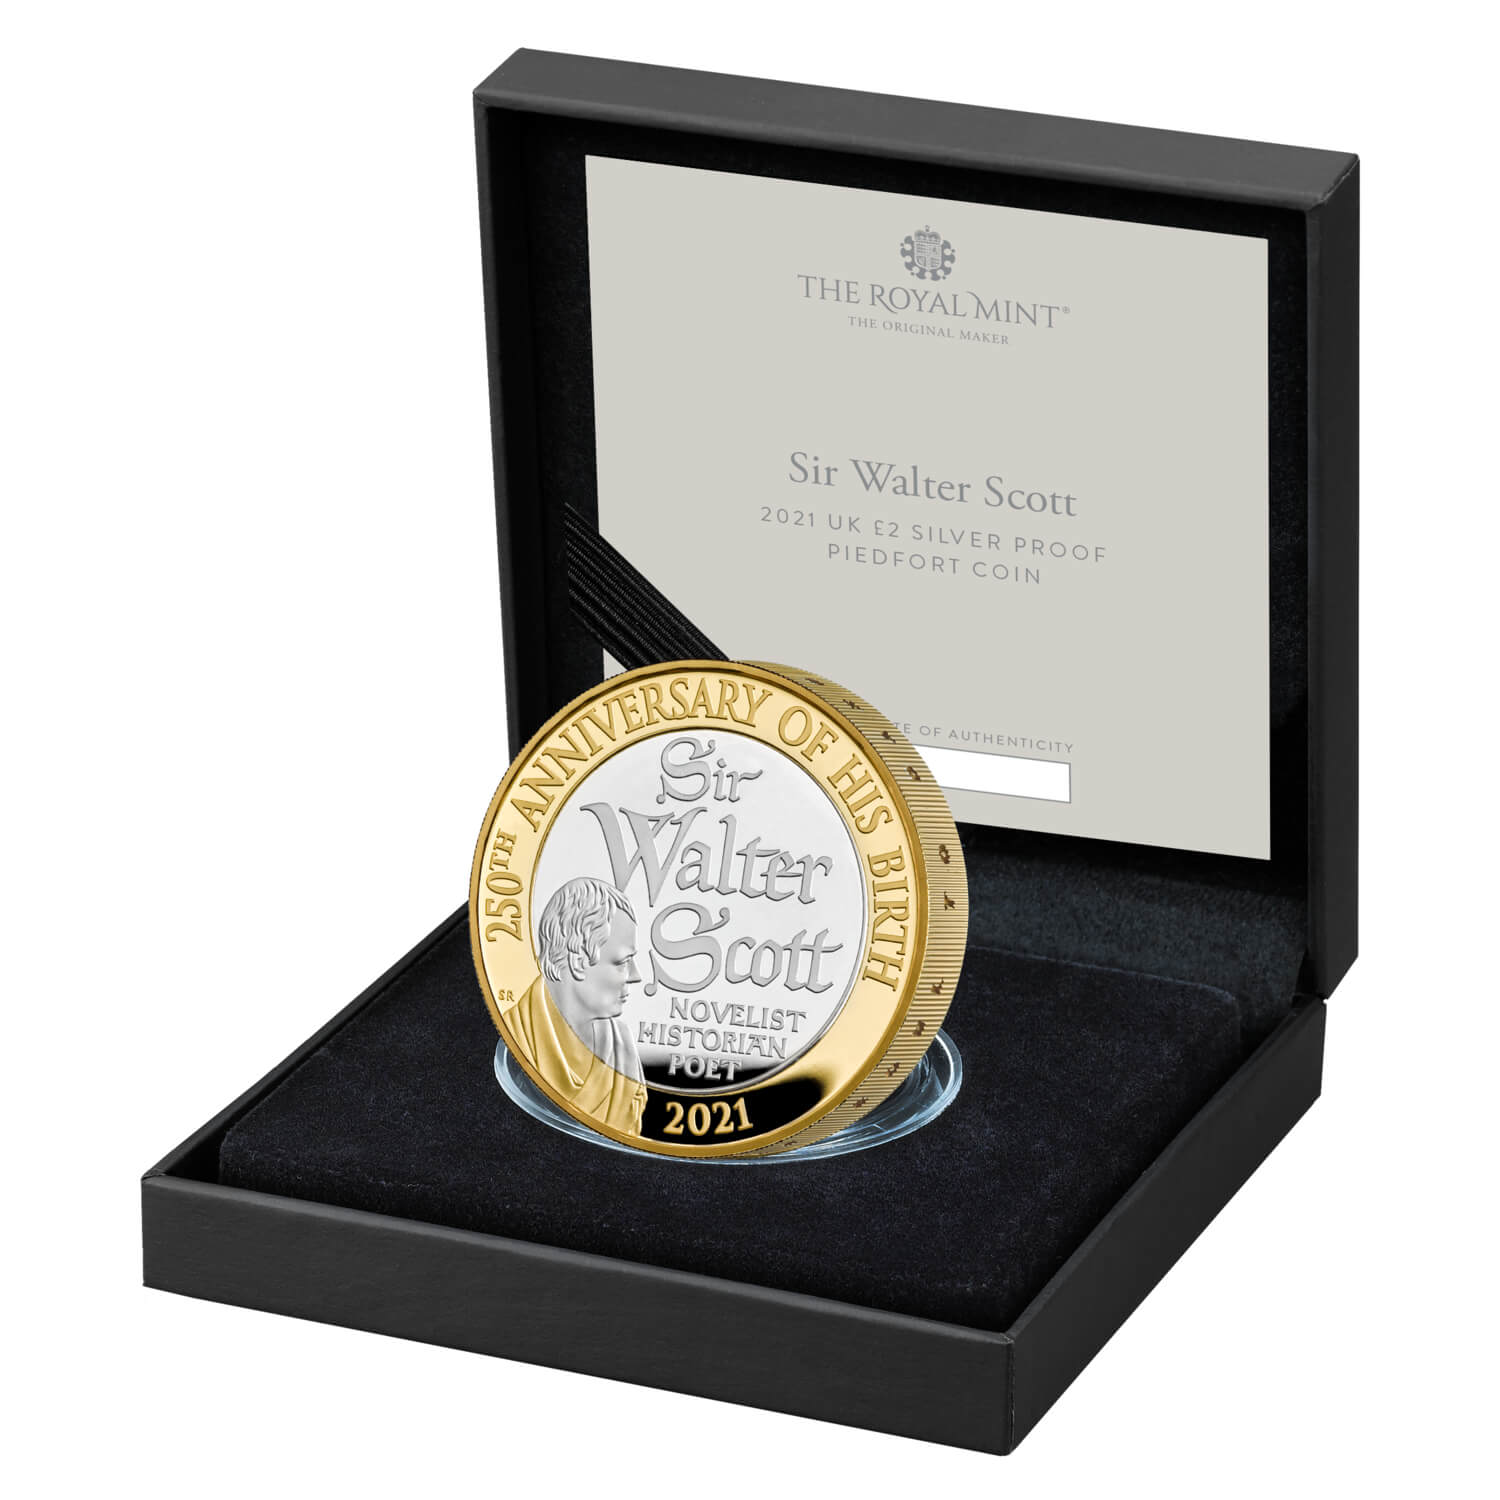 The 250th Anniversary of the Birth of Sir Walter Scott 2021 UK £2 Silver Proof Piedfort Coin